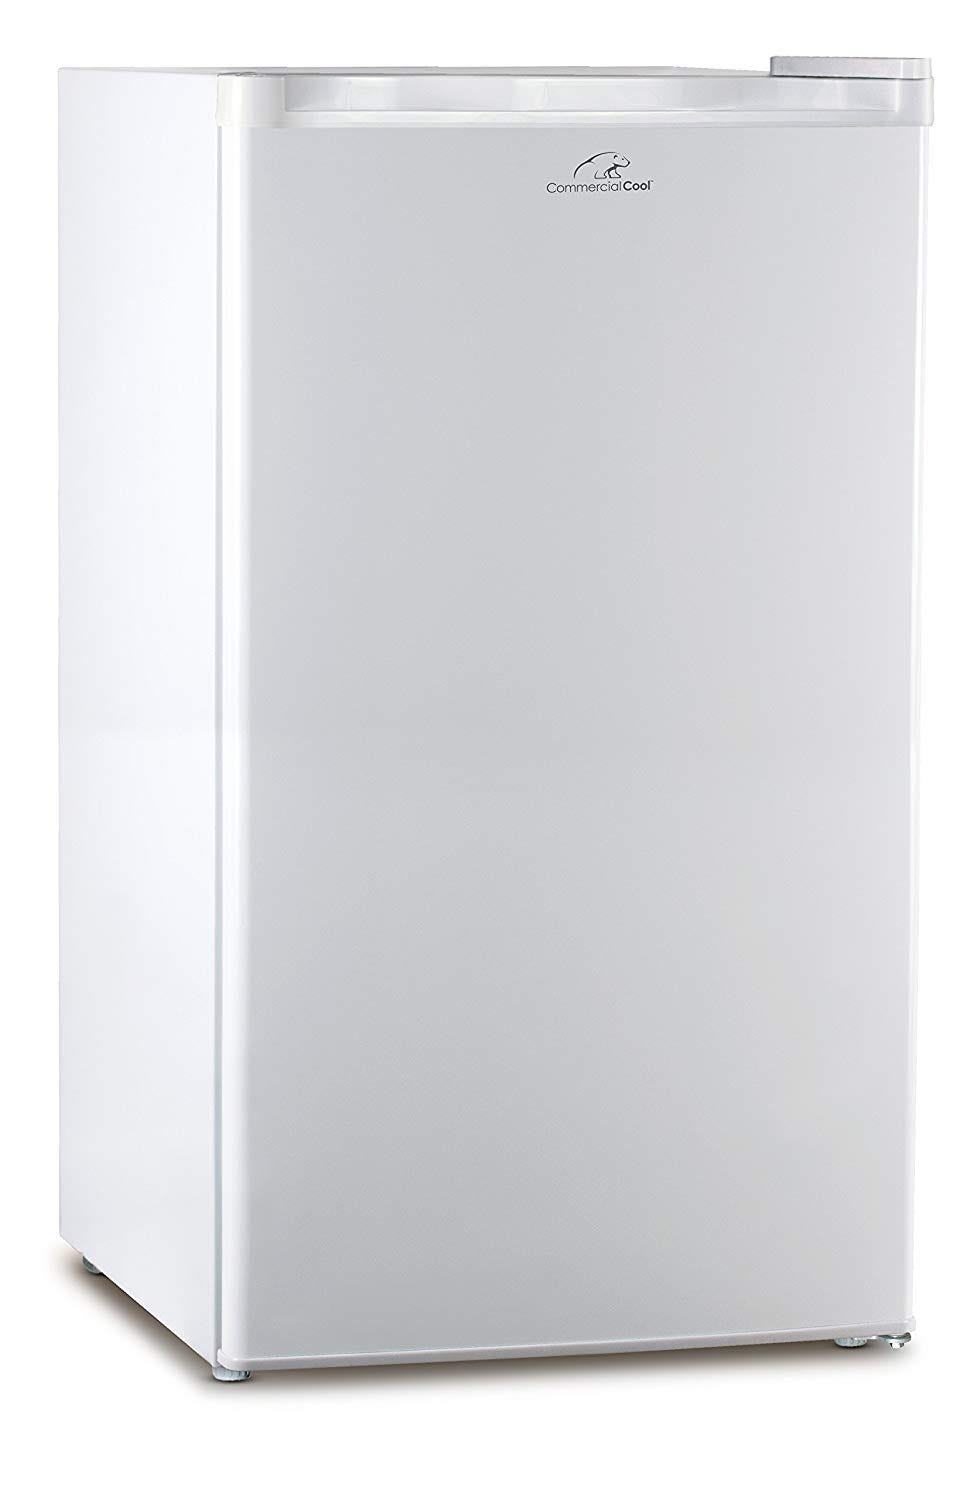 Compact Single-Door Mini Refrigerator & Freezer